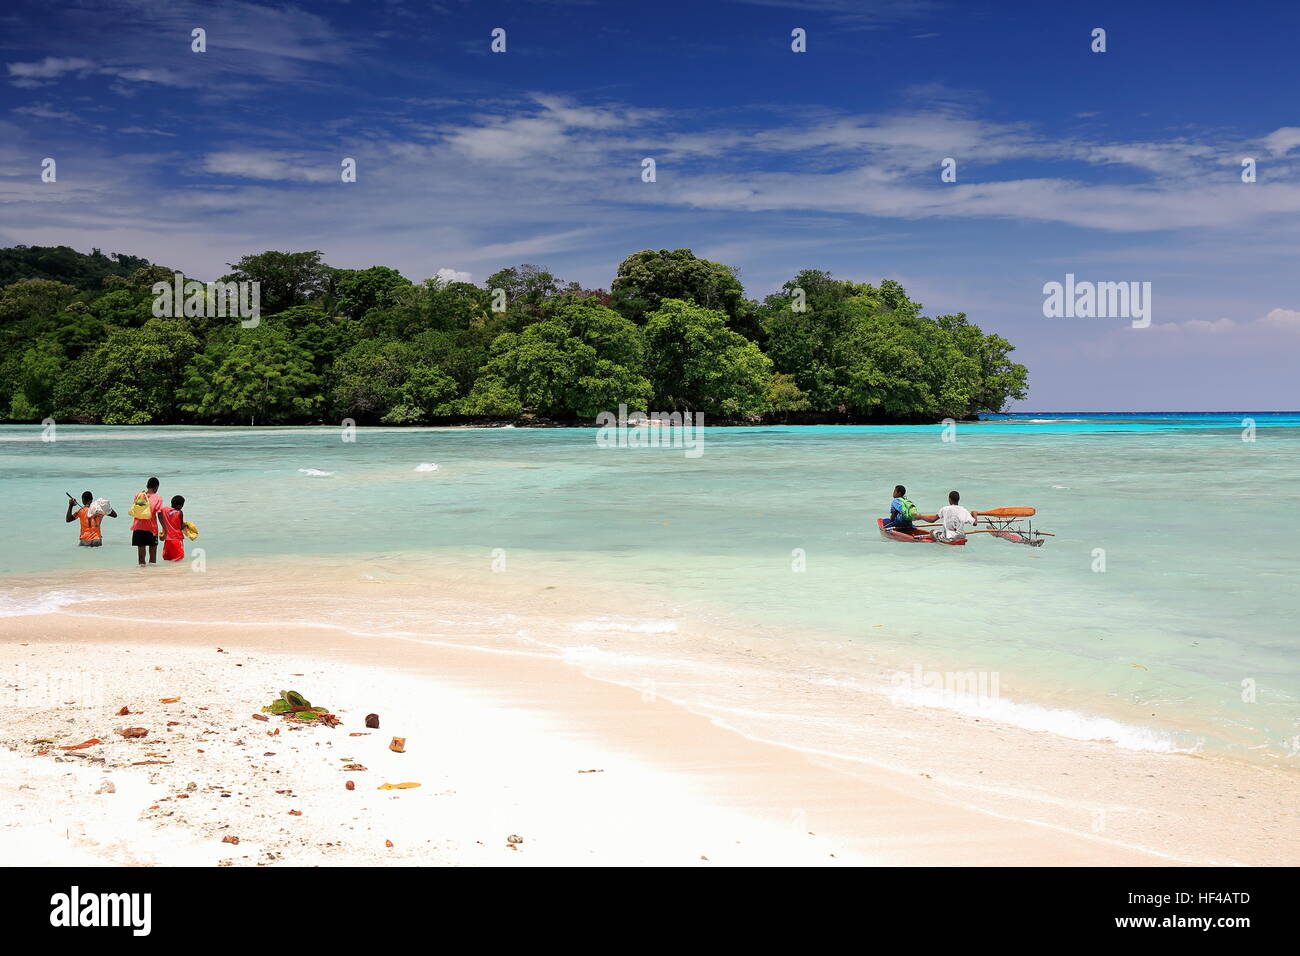 Port Olry, Vanuatu-October 19, 2014: Ni-Vanuatu boys cross by foot and boat at low tide the channel over the sand - Stock Image